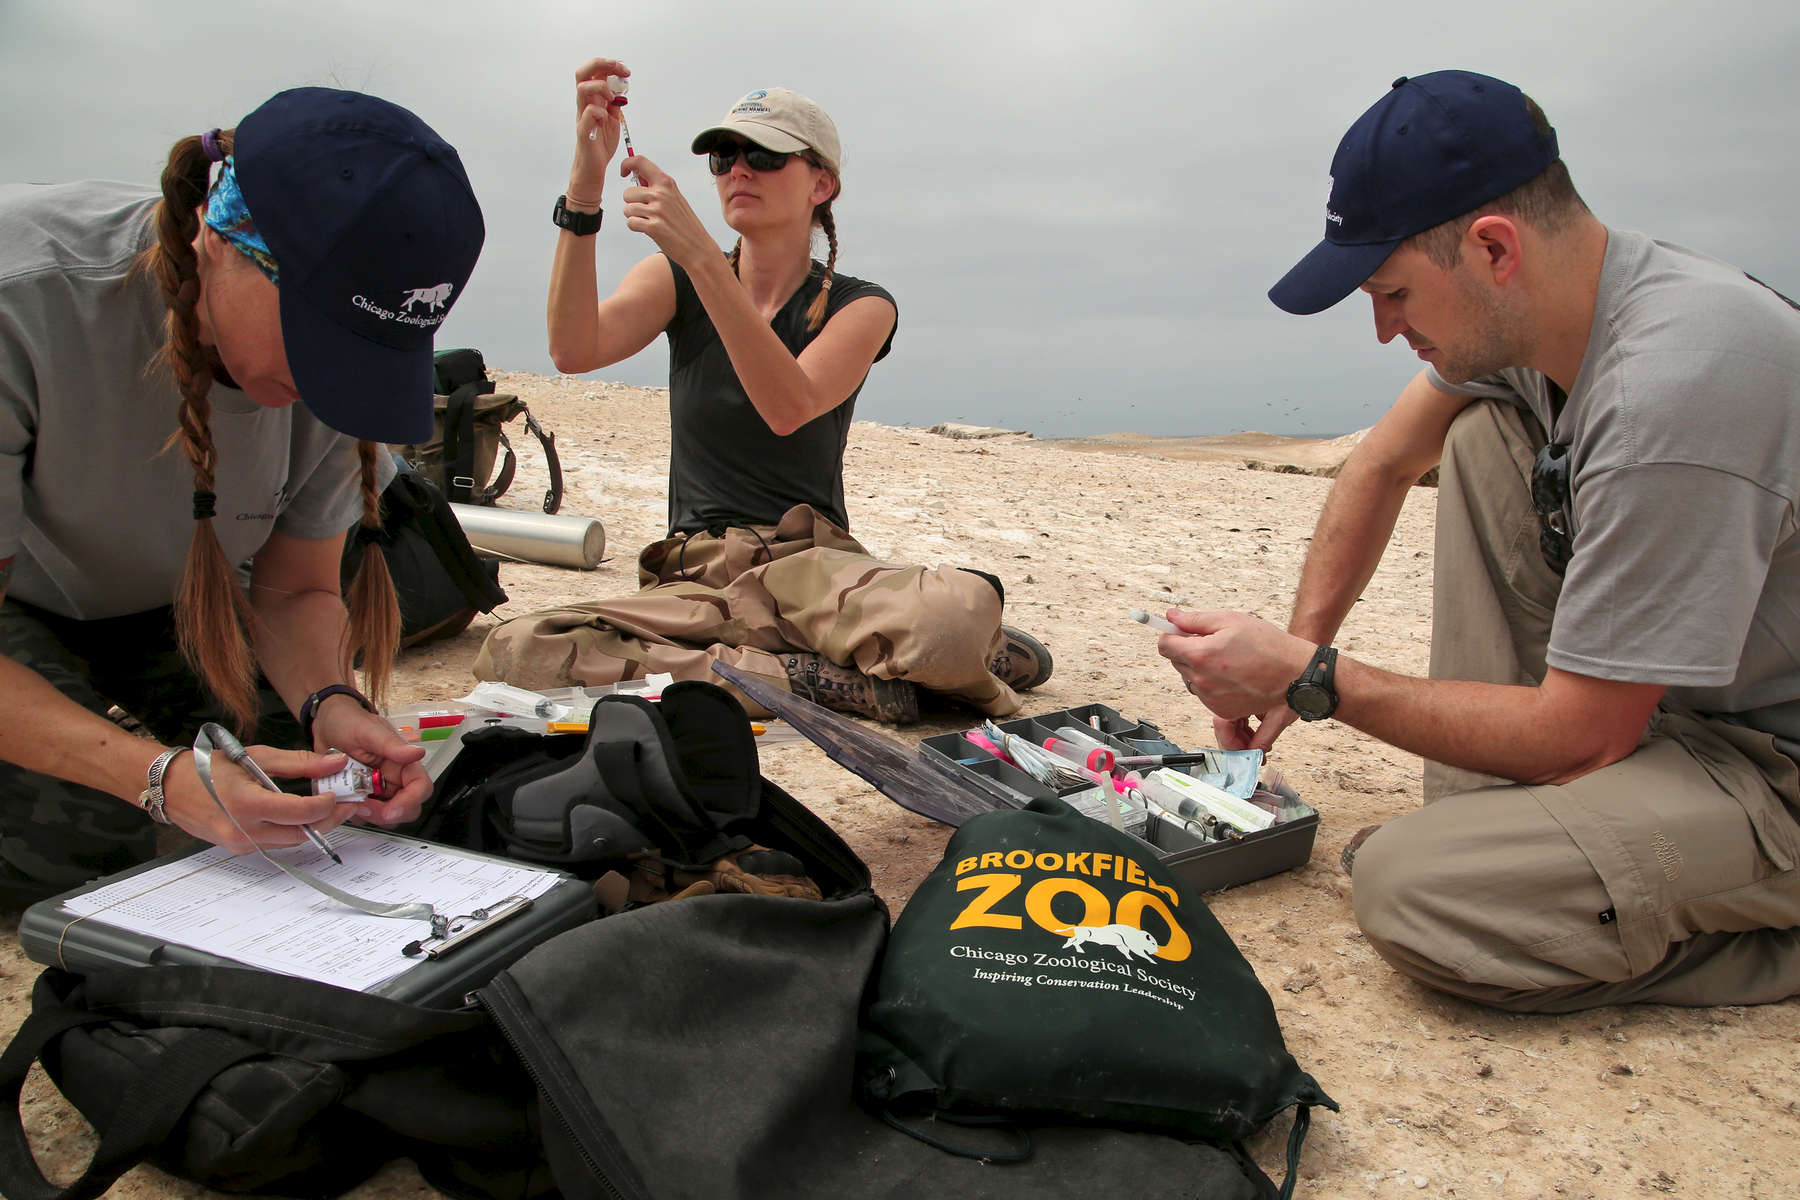 MaryAnn Duda, a veterinary technician for the Brookfield Zoo, left, Dr. Jenny Meegan, a veterinarian at the National Marine Mammal Foundation, in San Diego, center, and Dr. Michael Adkesson, vice president of clinical medicine at the Brookfield Zoo, right, drew up medications to tranquilize South American sea lions so the team could collect body samples and measurements to assess the animals' health.